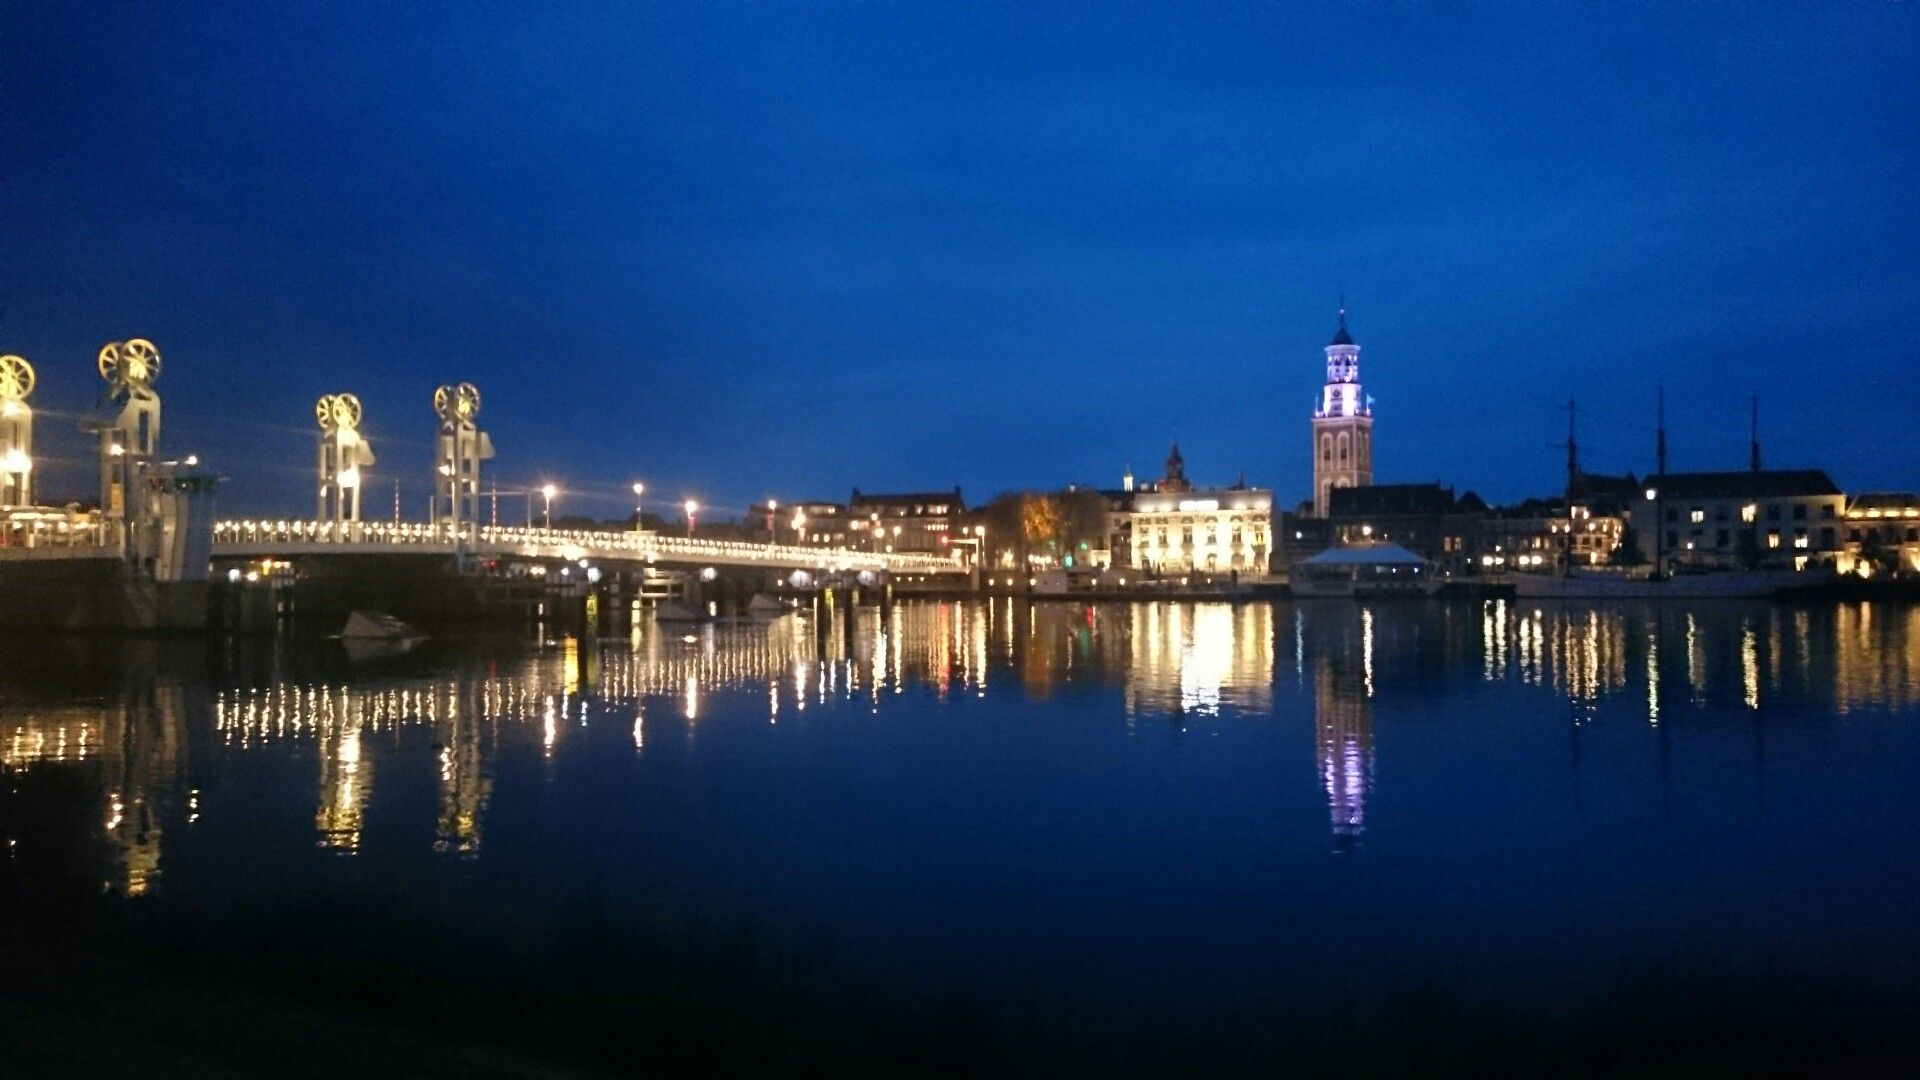 kampen in the evening